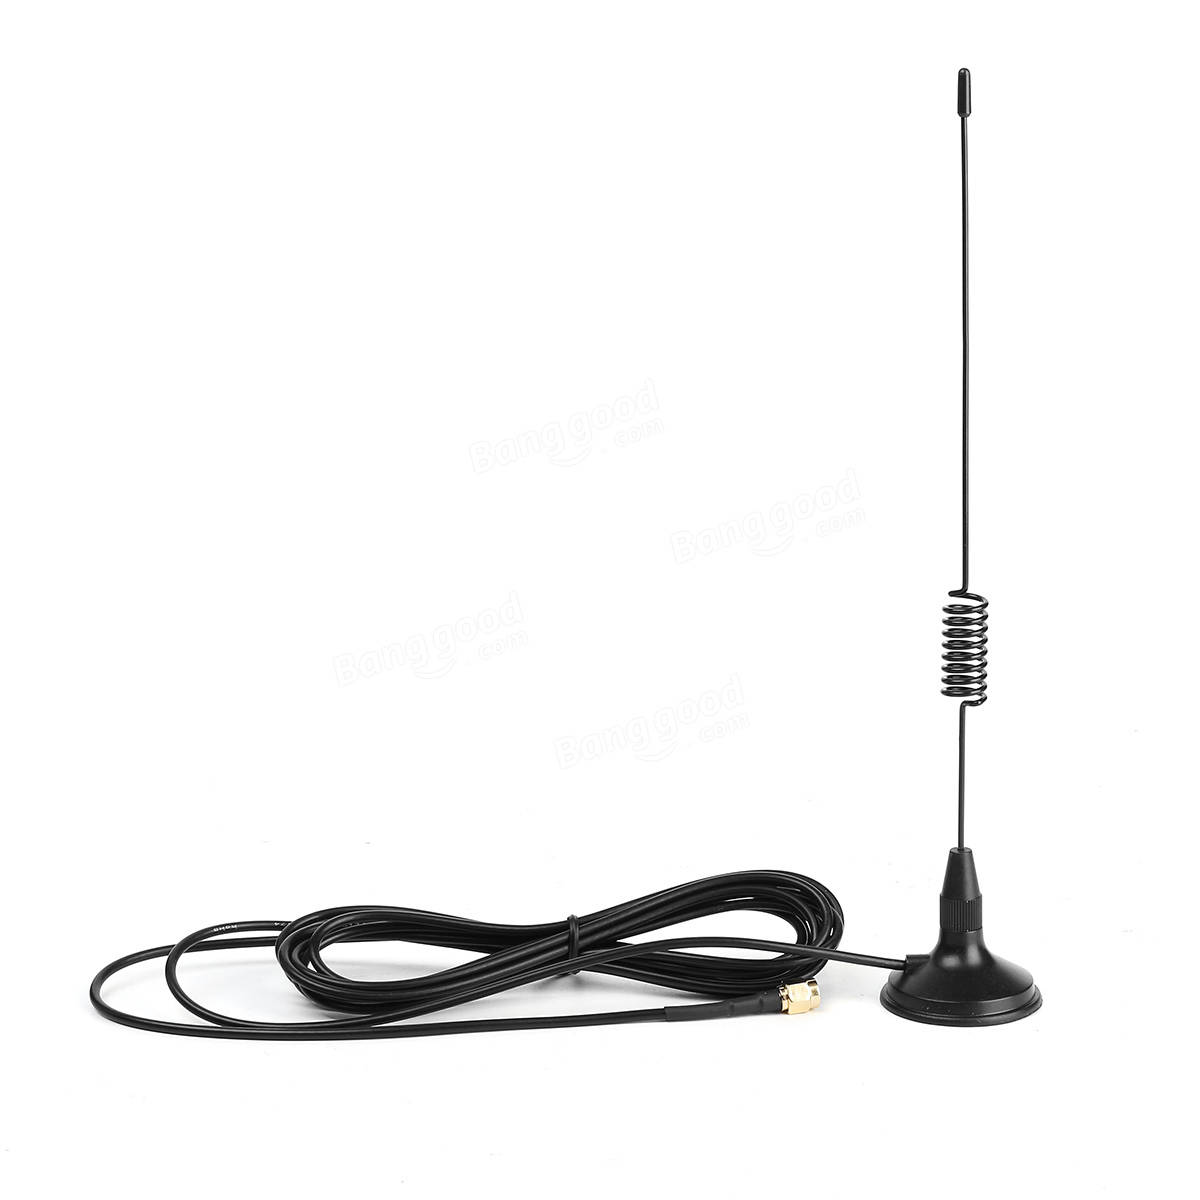 Excellway Rtl U R820t2 100khz 1 7ghz Uhf Vhf Hf Rtlr All Wave Usb Tuner Receiver Am Fm